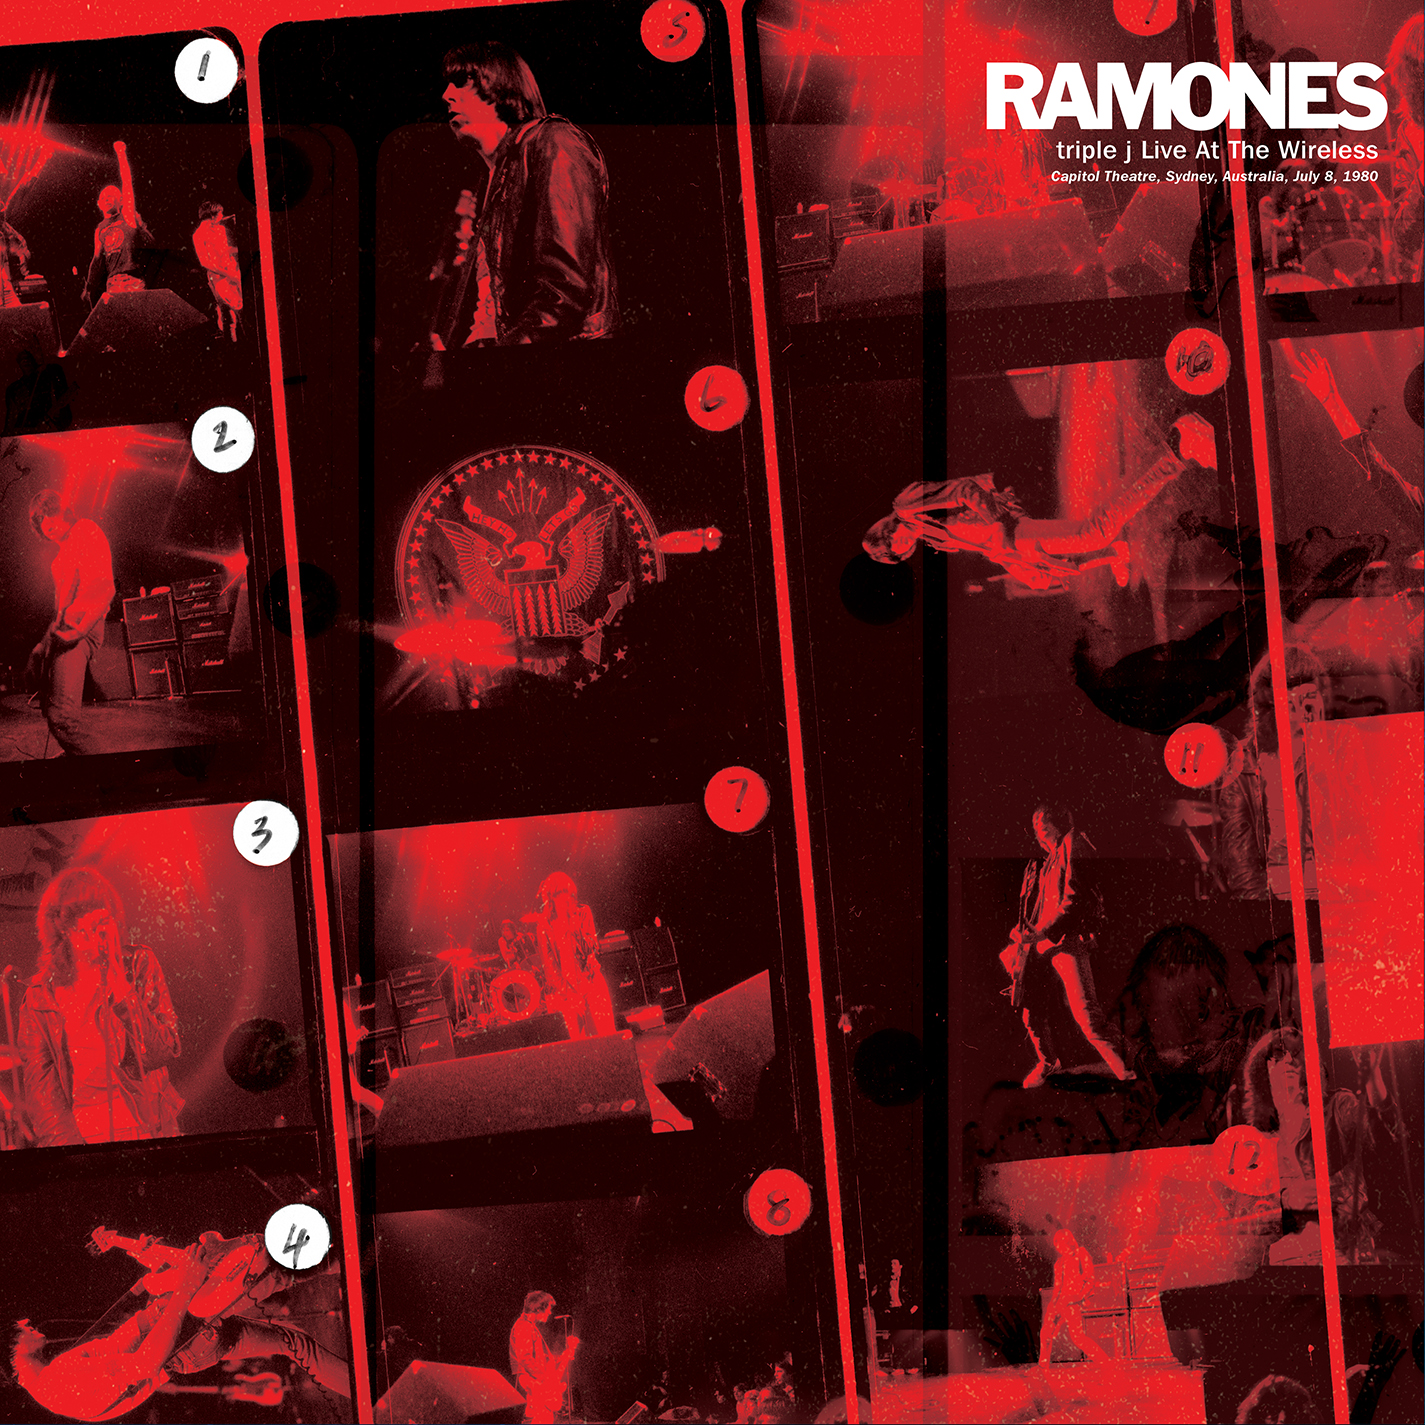 Ramones - triple J Live at the Wireless Capitol Theatre, Sydney, Australia, July 8, 1980 [RSD Drops 2021]